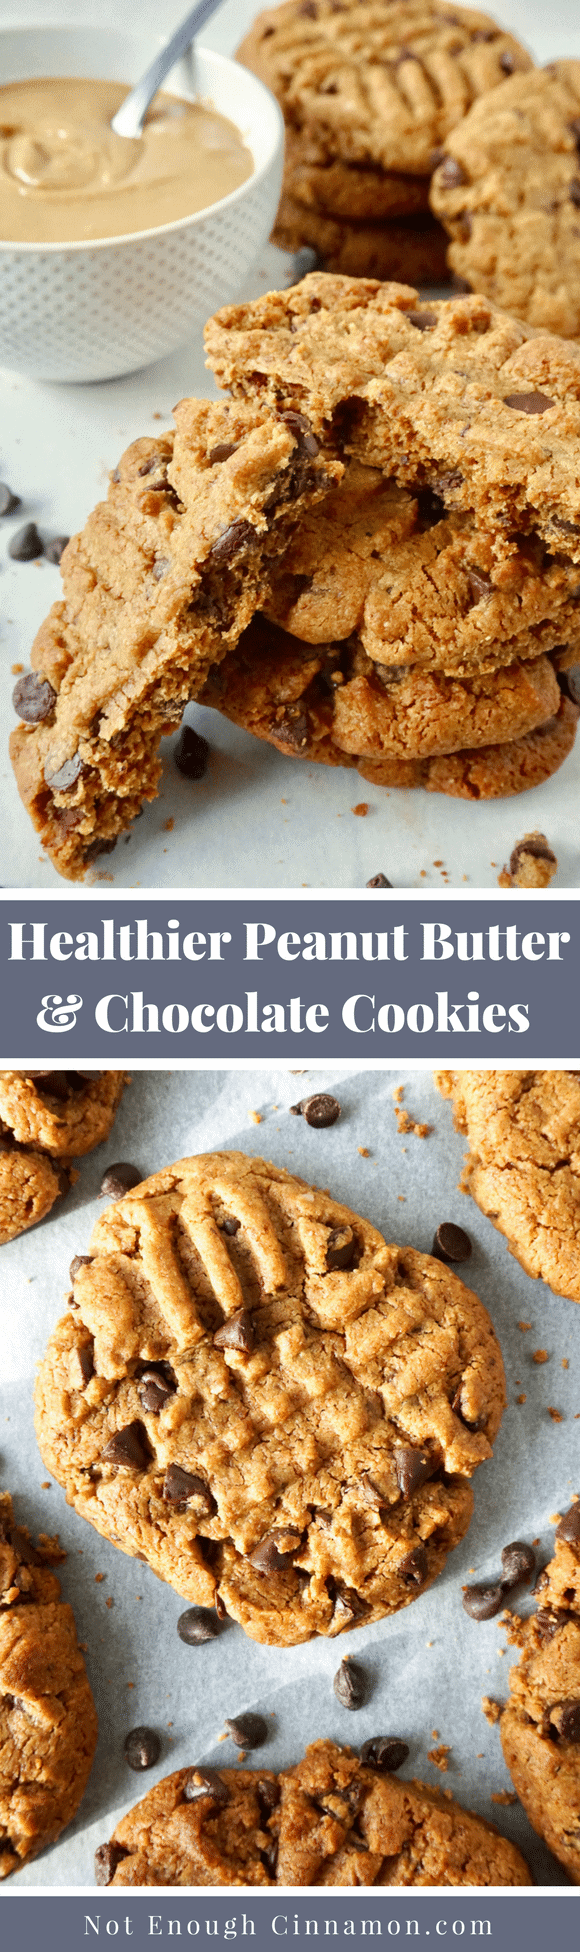 Super easy and delicious peanut butter and chocolate cookies, made with just a few basic ingredients. They are refined sugar- free thanks to coconut sugar and naturally gluten-free, too. #cookierecipes, #peanutbuttercookies, #chocolatechipcookies, #healthybaking